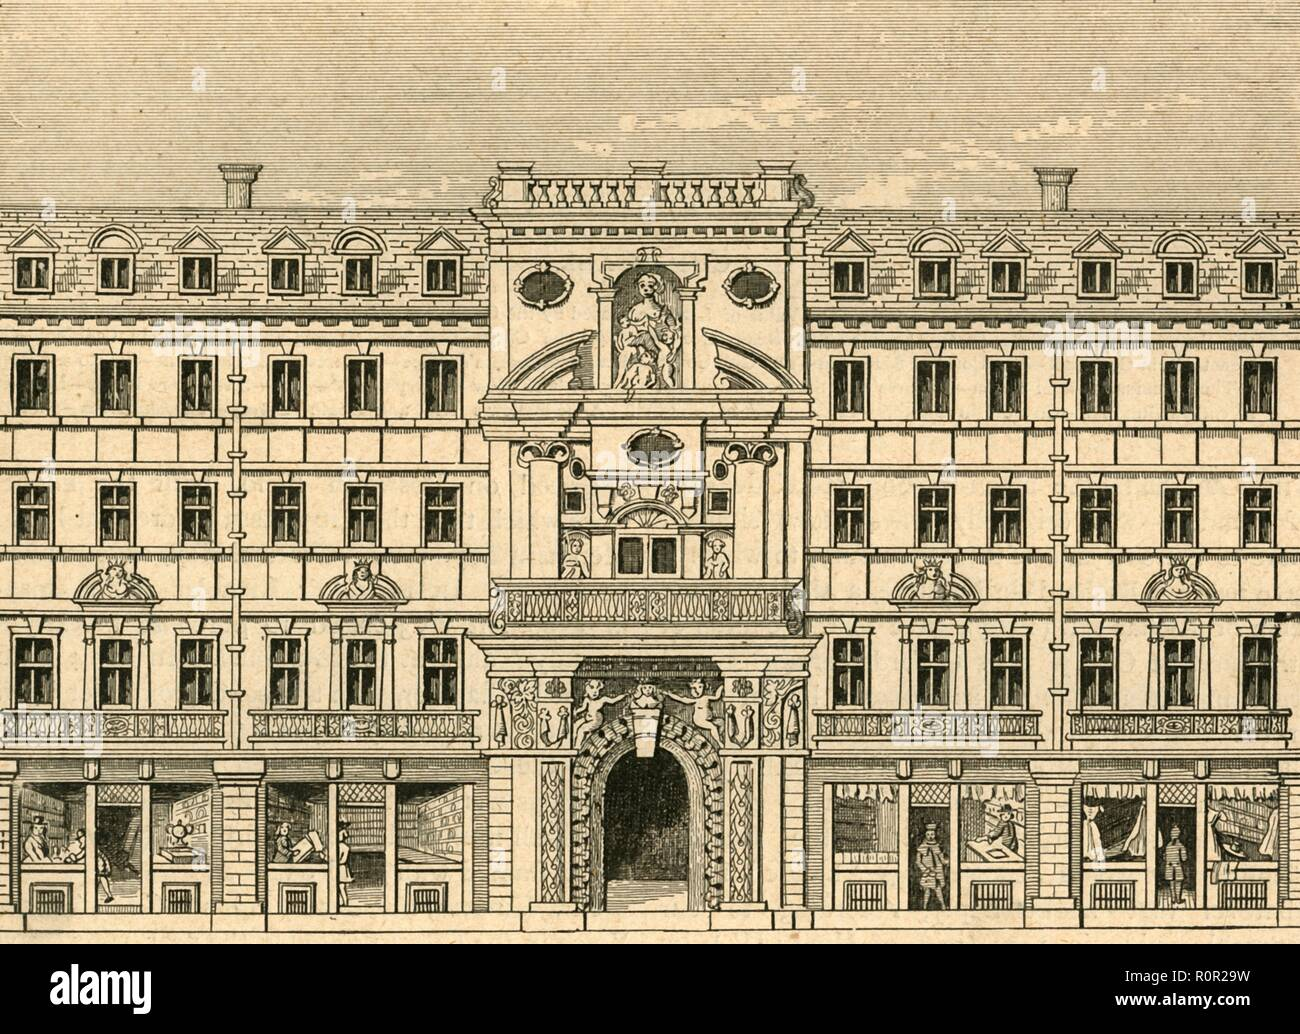 'Mercers' Chapel, as rebuilt after the fire', 1897. Chapel of the Worshipful Company of Mercers in the City of London. The second Hall and chapel, designed by Edward Jarman and John Oliver after the previous building was destroyed in the Great Fire of 1666, opened in May 1676. The Mercers' Company is the only City Livery Company to have its own private chapel. From Old and New London, Volume I, by Walter Thornbury. [Cassell and Company, Limited, London, Paris & Melbourne, 1897] - Stock Image